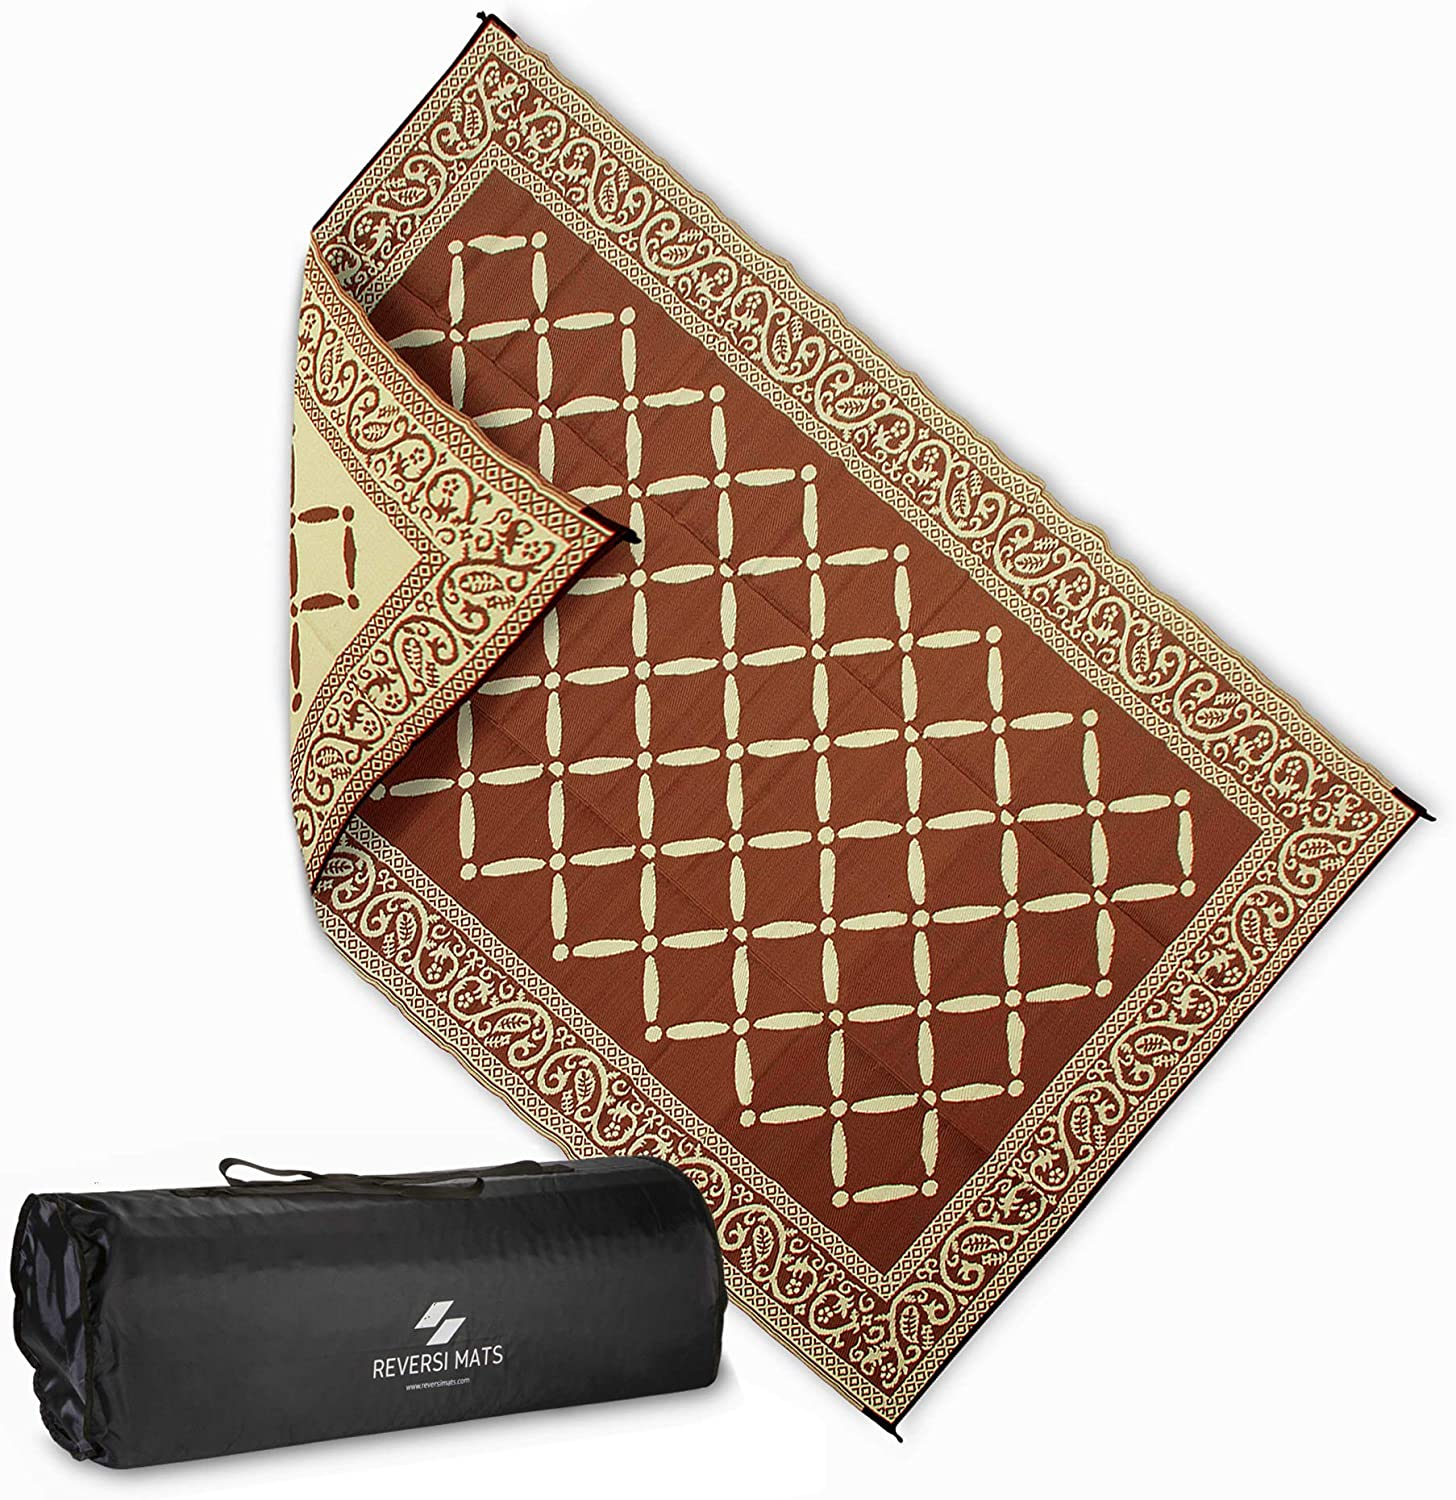 AdvenGo Reversi Mats (6' x 9') Medium Mat and Rug for Outdoors, RV, Patio, Trailer & Camping - Heavy Duty, Weather Resistant Reversible Rugs - Comes with Storage Bag - Great for Picnics - Brown Beige